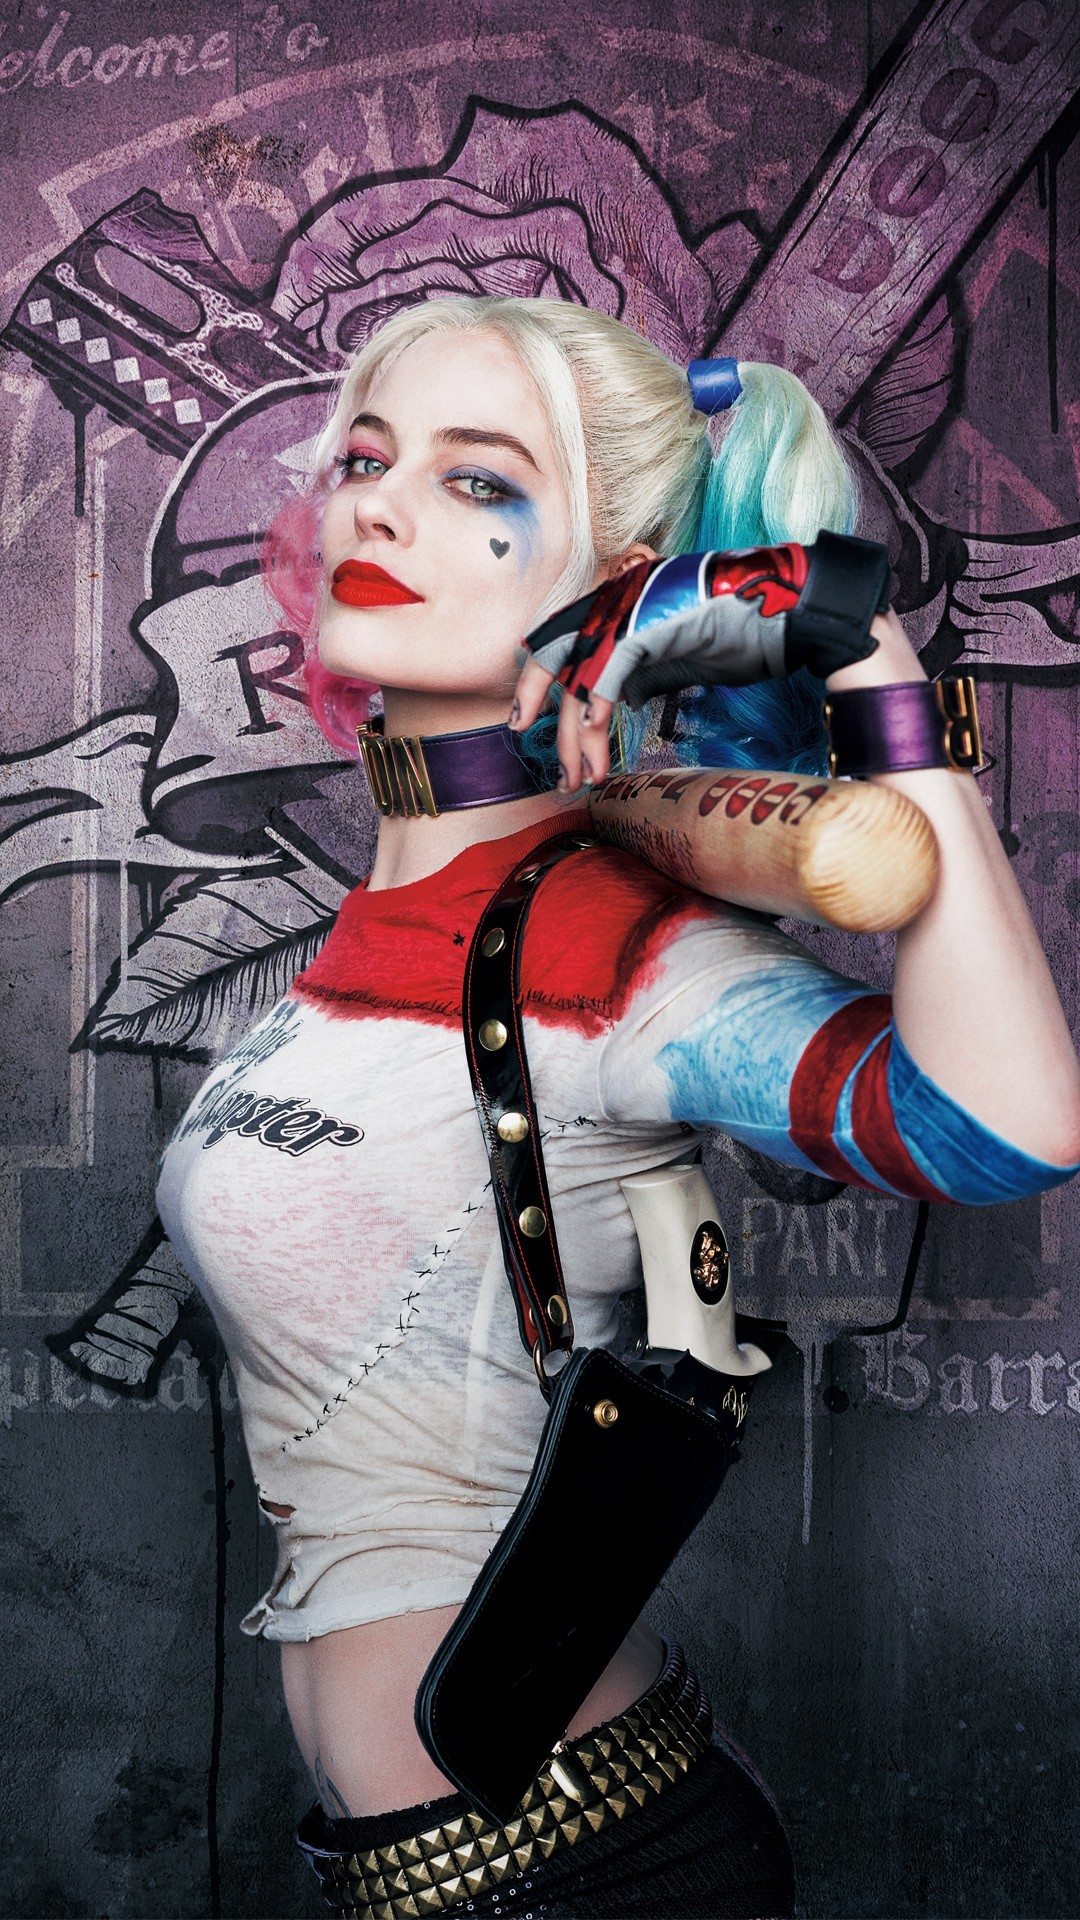 Free Harley Quinn Margot Robbie Suicide Squad phone wallpaper by ckimble101